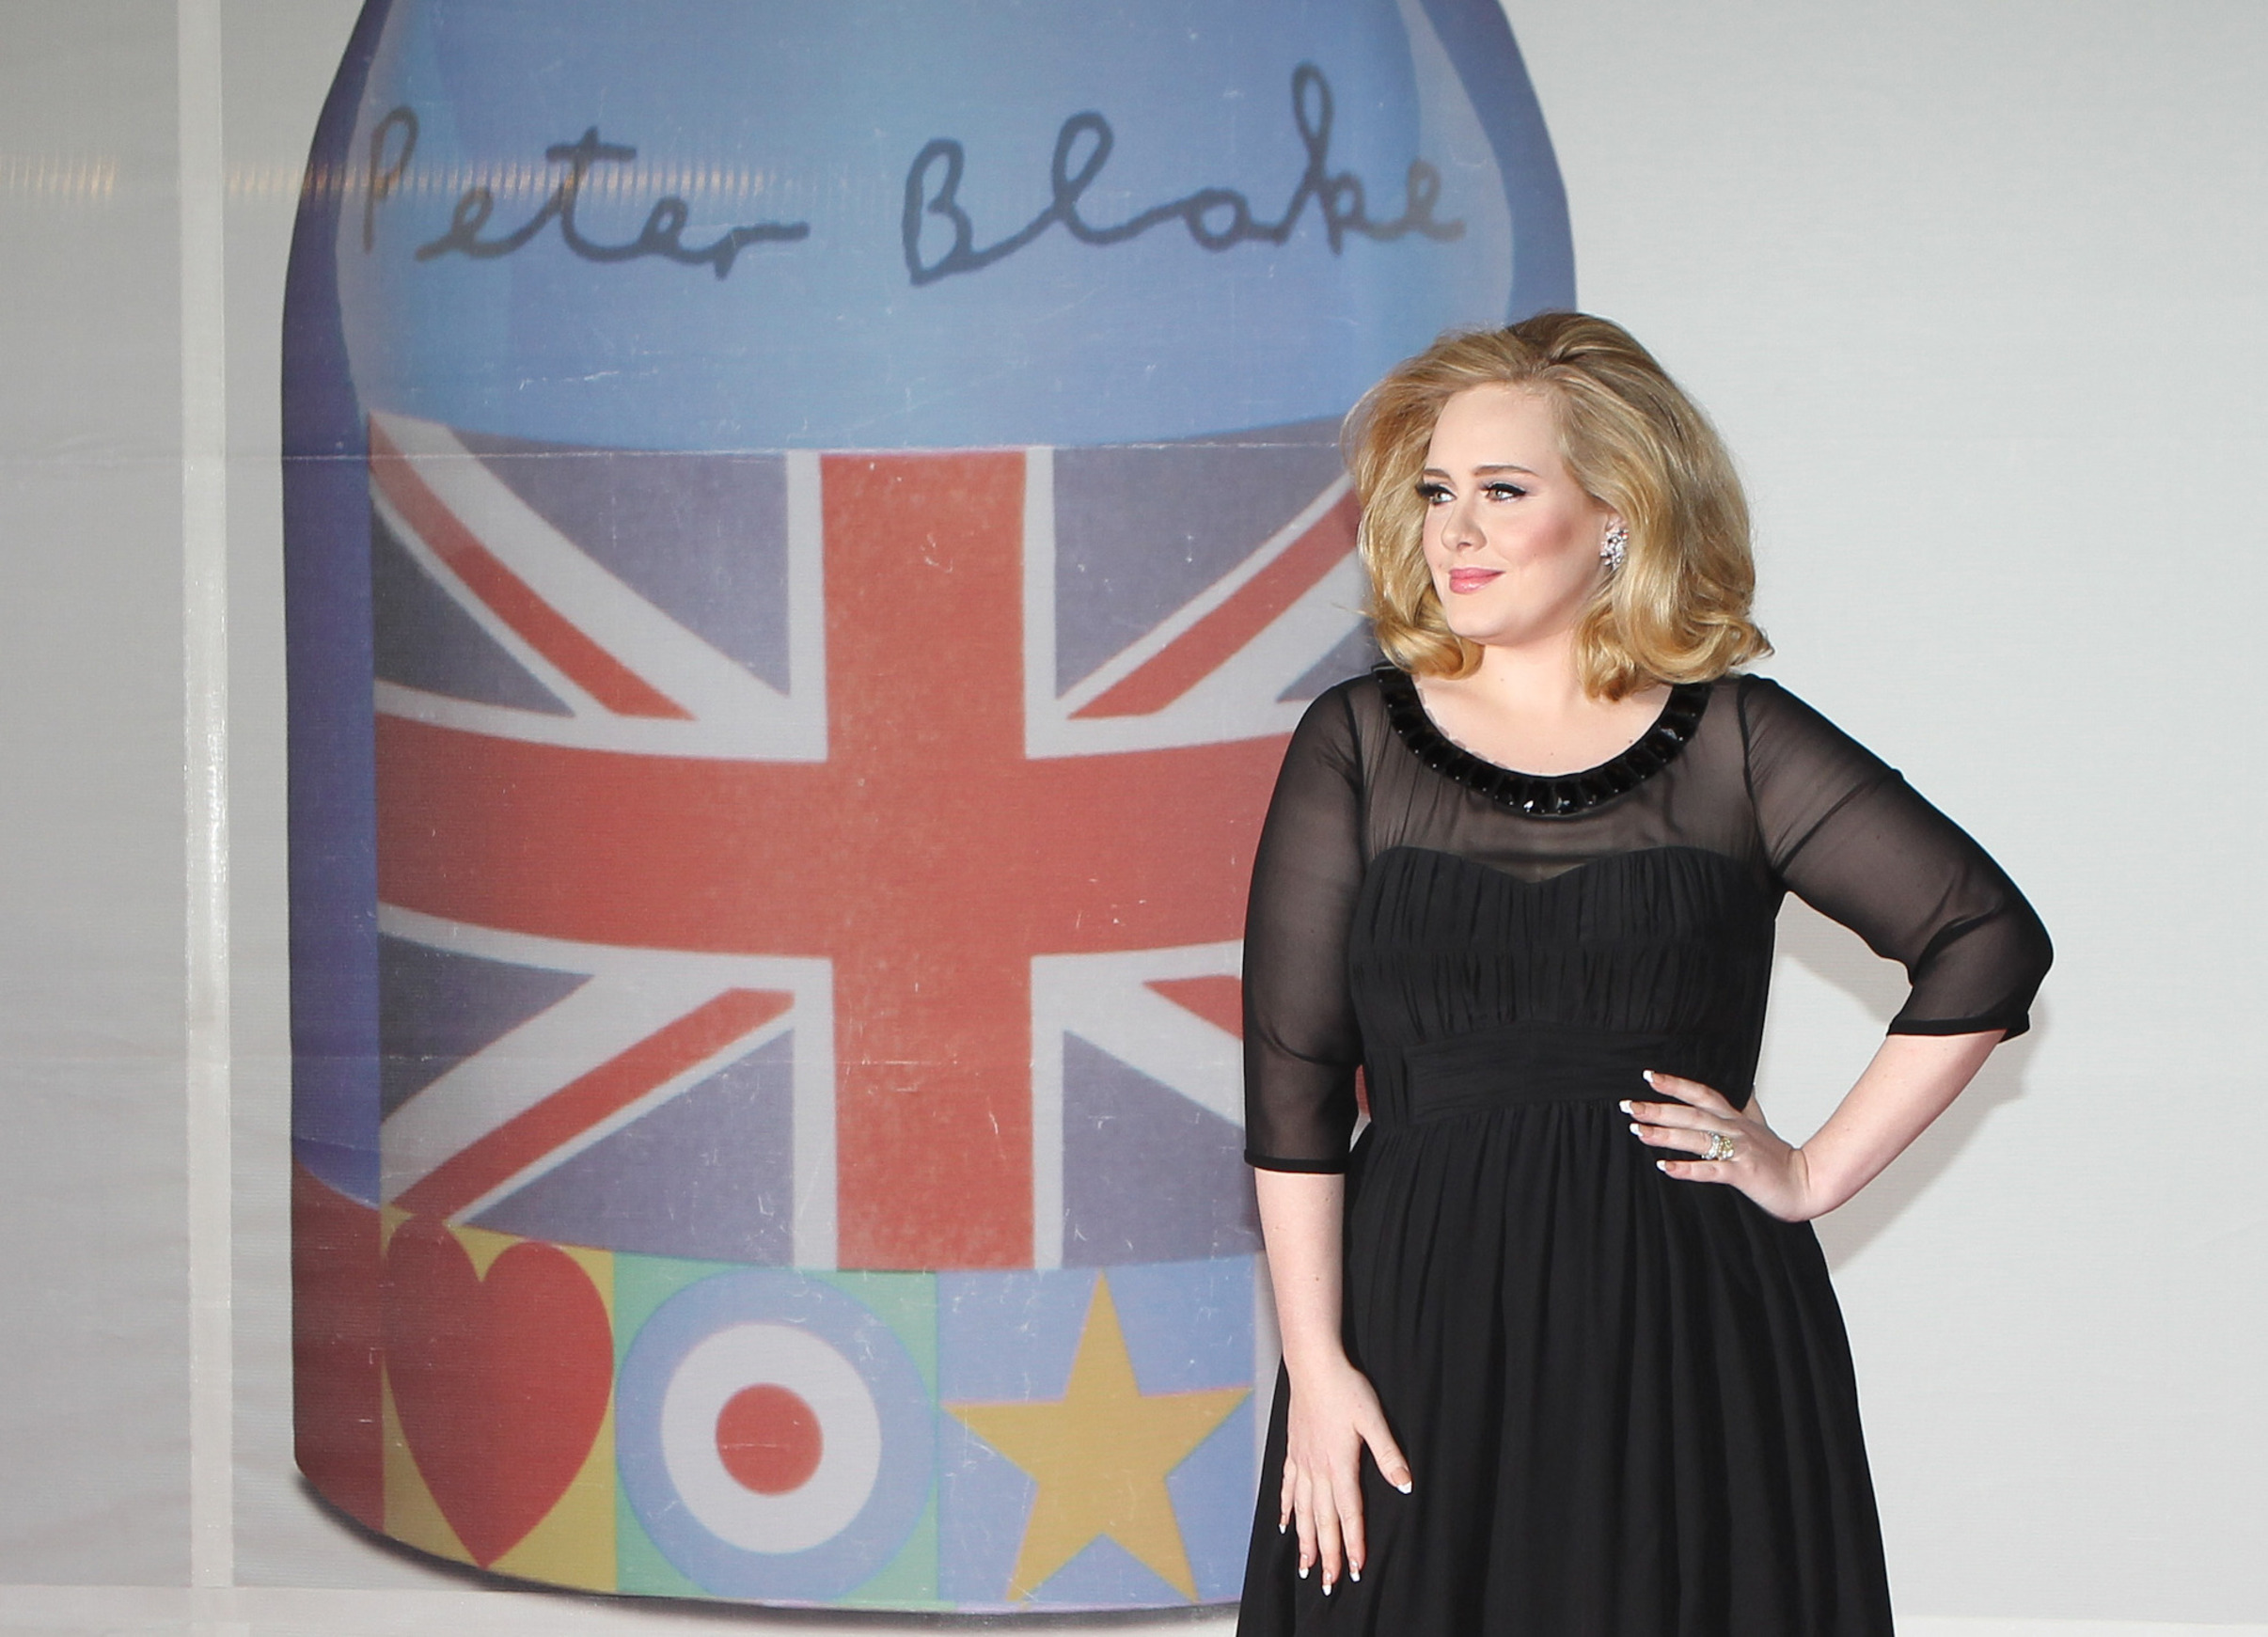 """A Breakdown Of All The Songs From Adele's New Album """"25"""""""